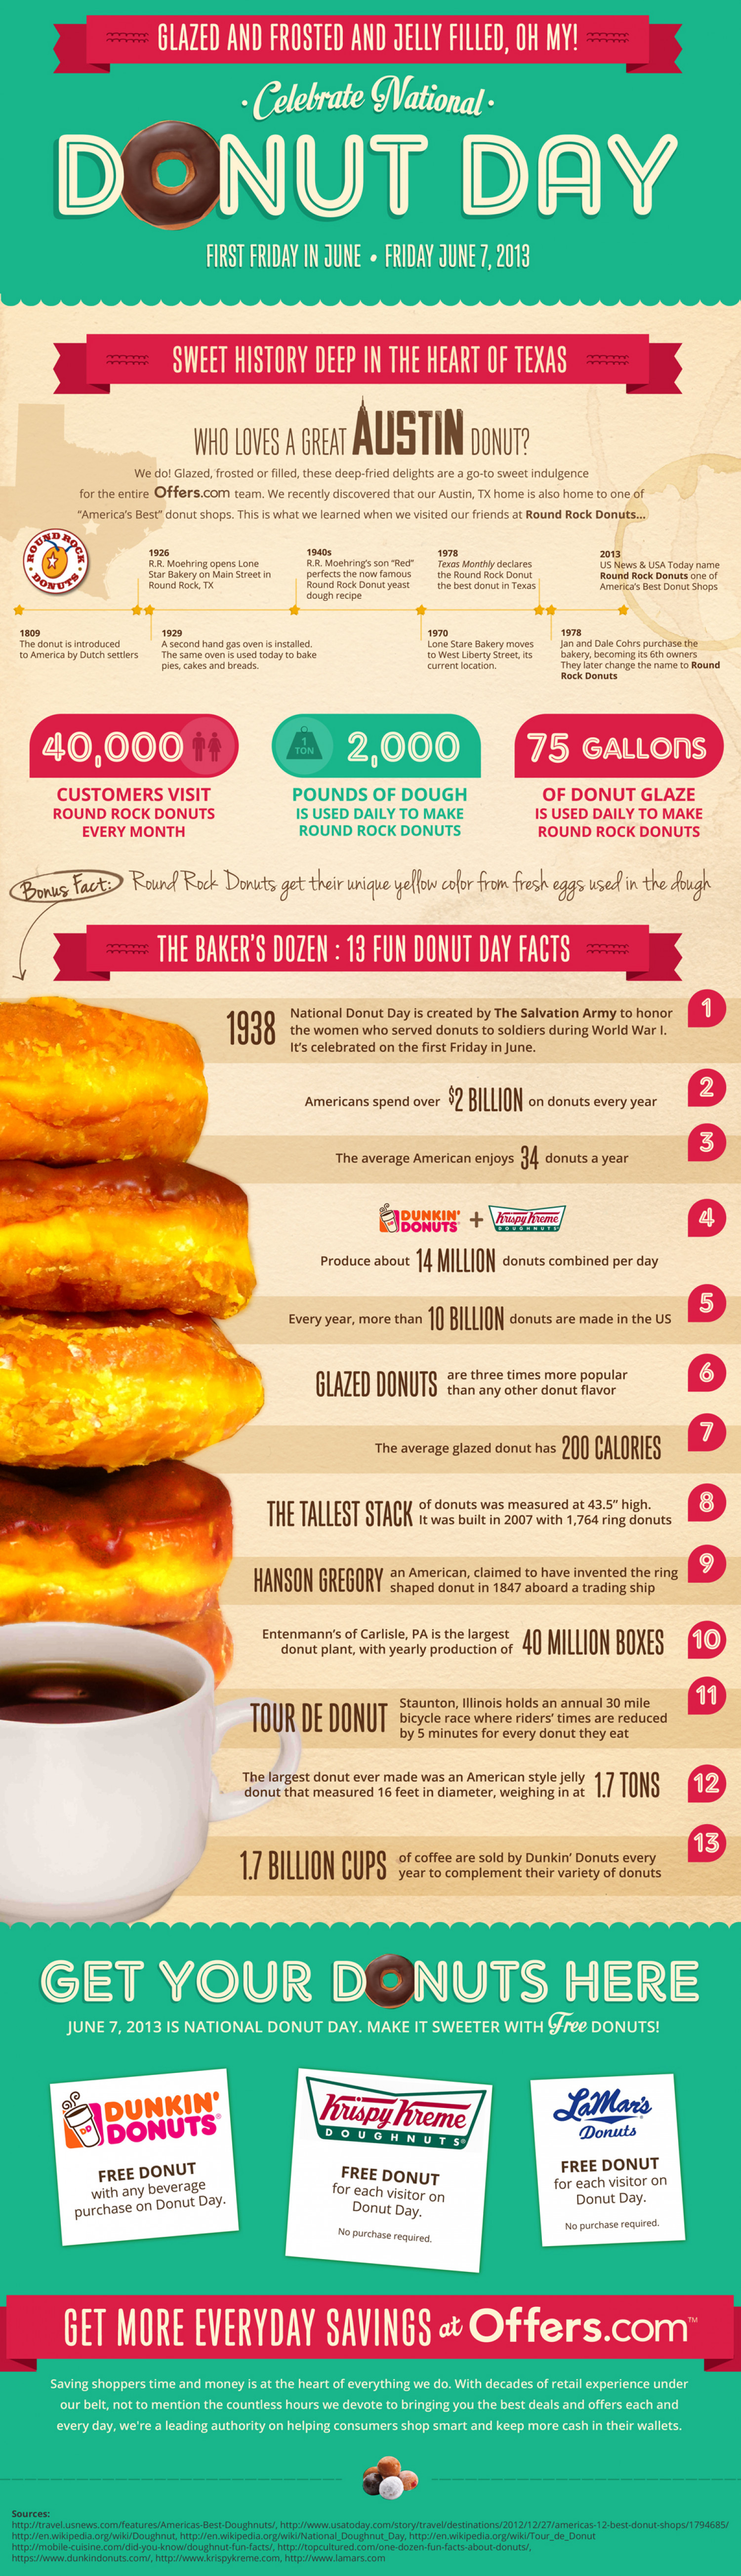 National Donut Day 2013 Infographic